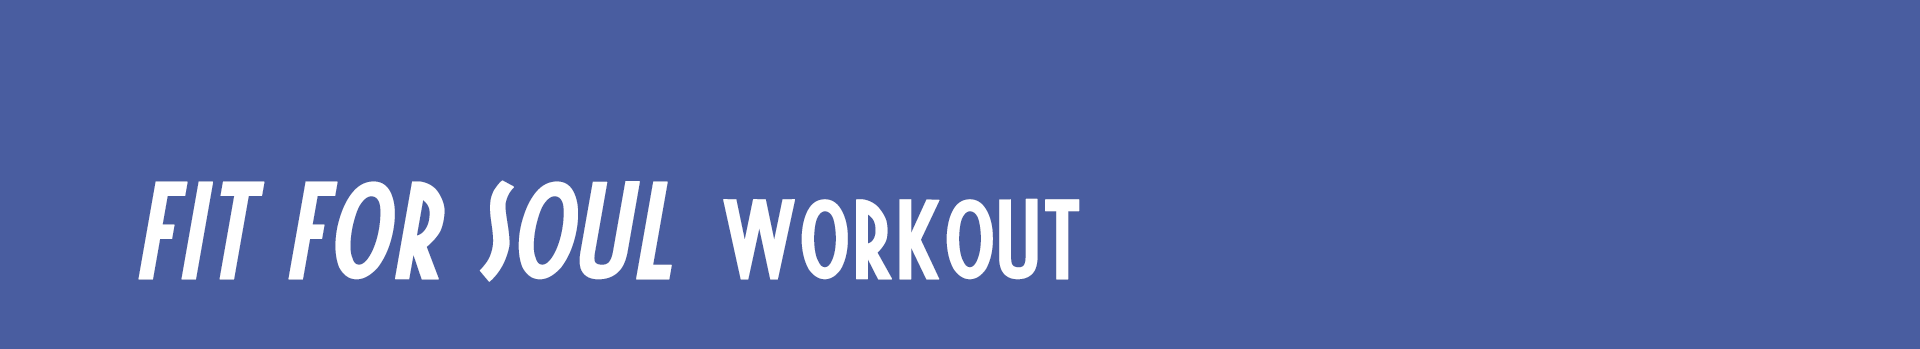 Fit For Soul Workout